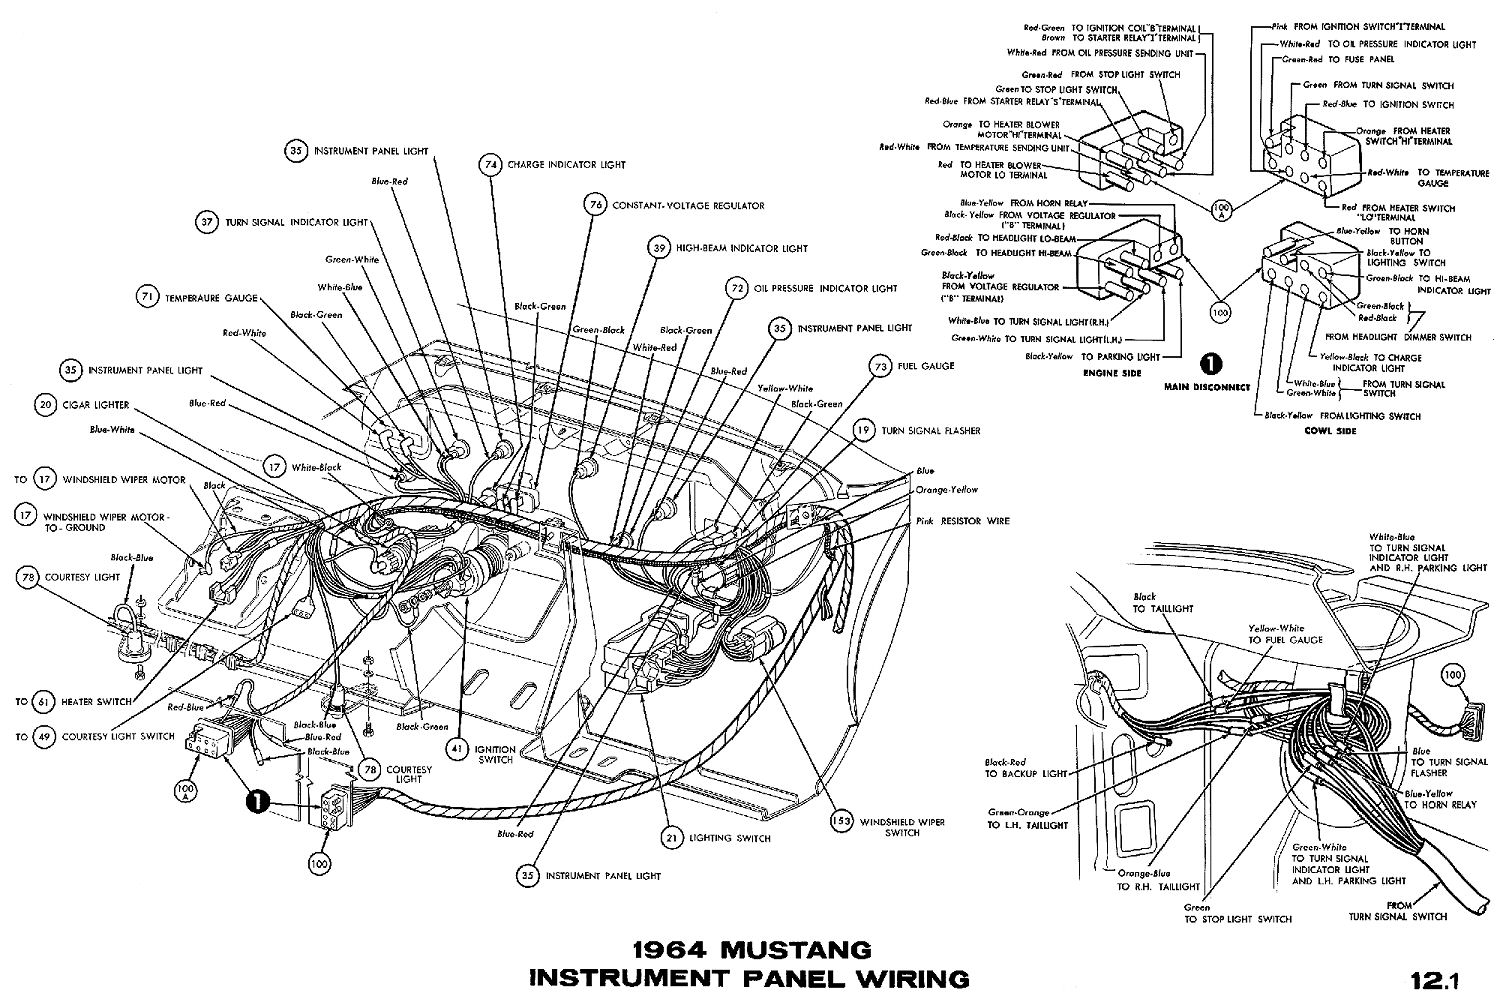 Remarkable 1964 Mustang Wiring Diagrams Average Joe Restoration Wiring Database Gentotyuccorg